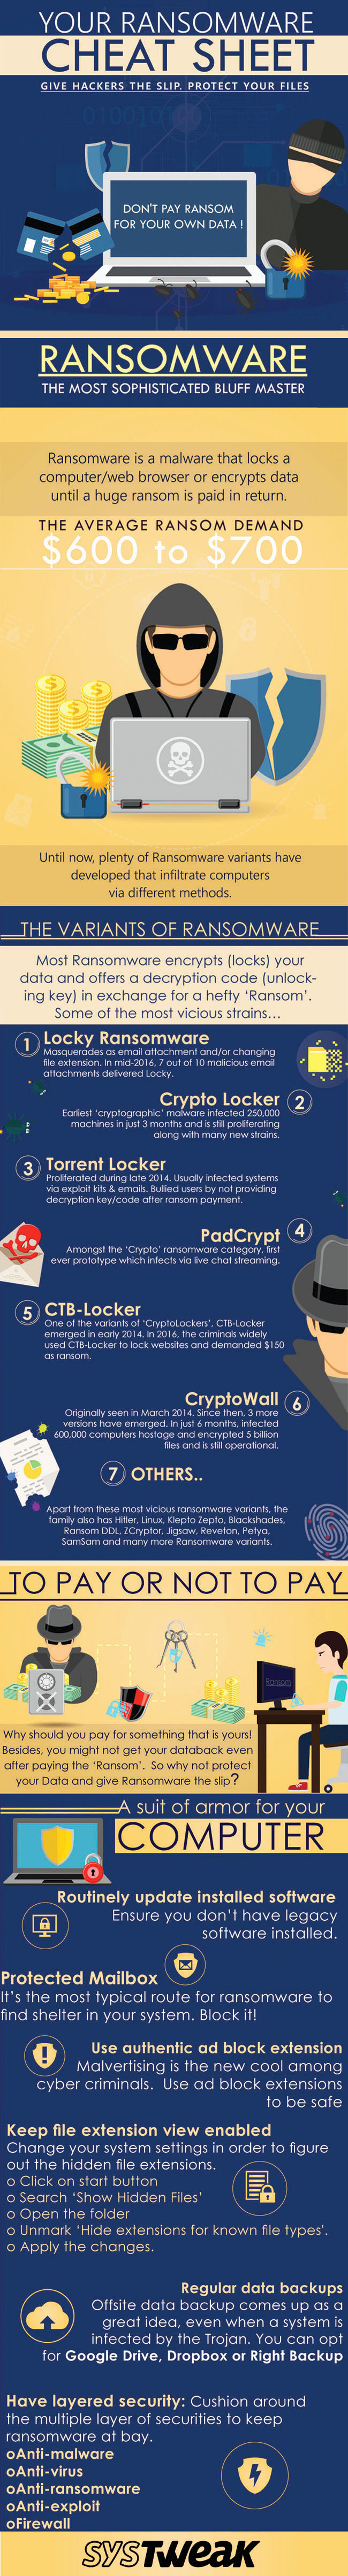 beaware of ransomware infographics